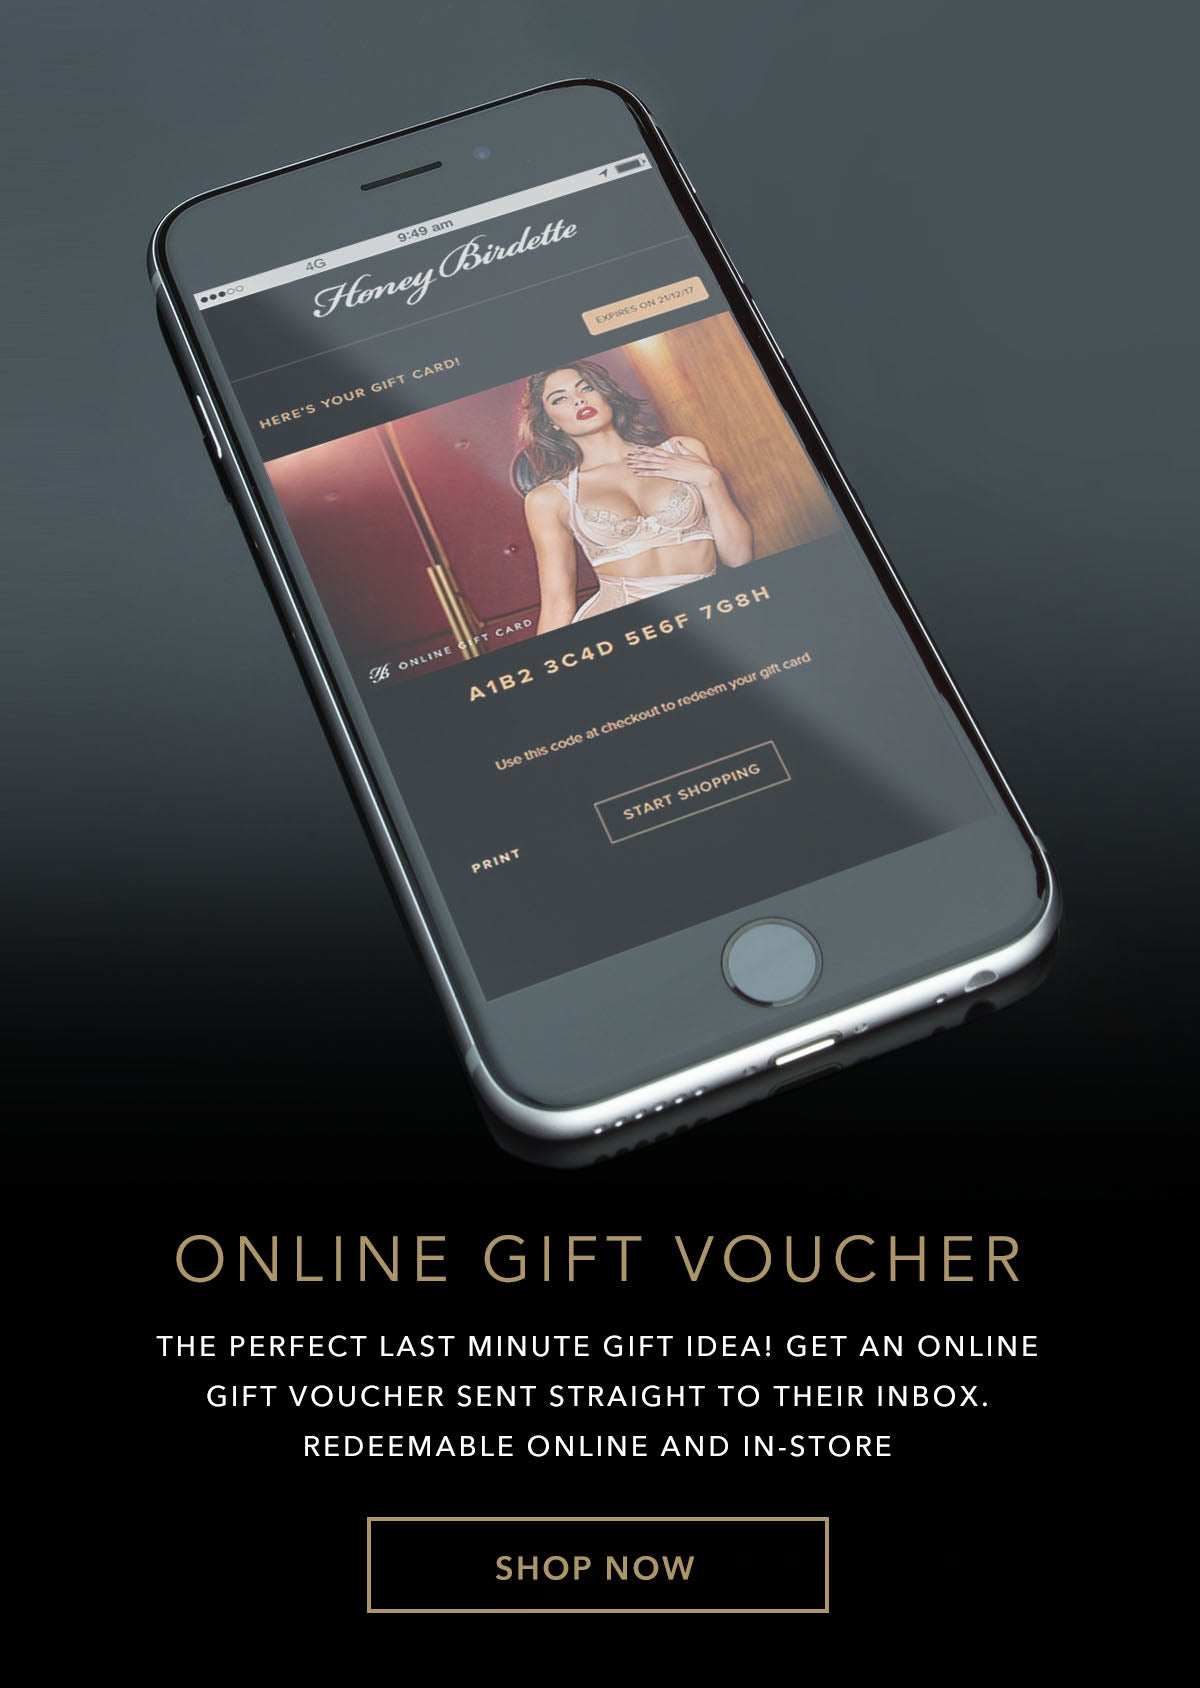 Online Gift Voucher - Gift Card - Honey Birdette UK